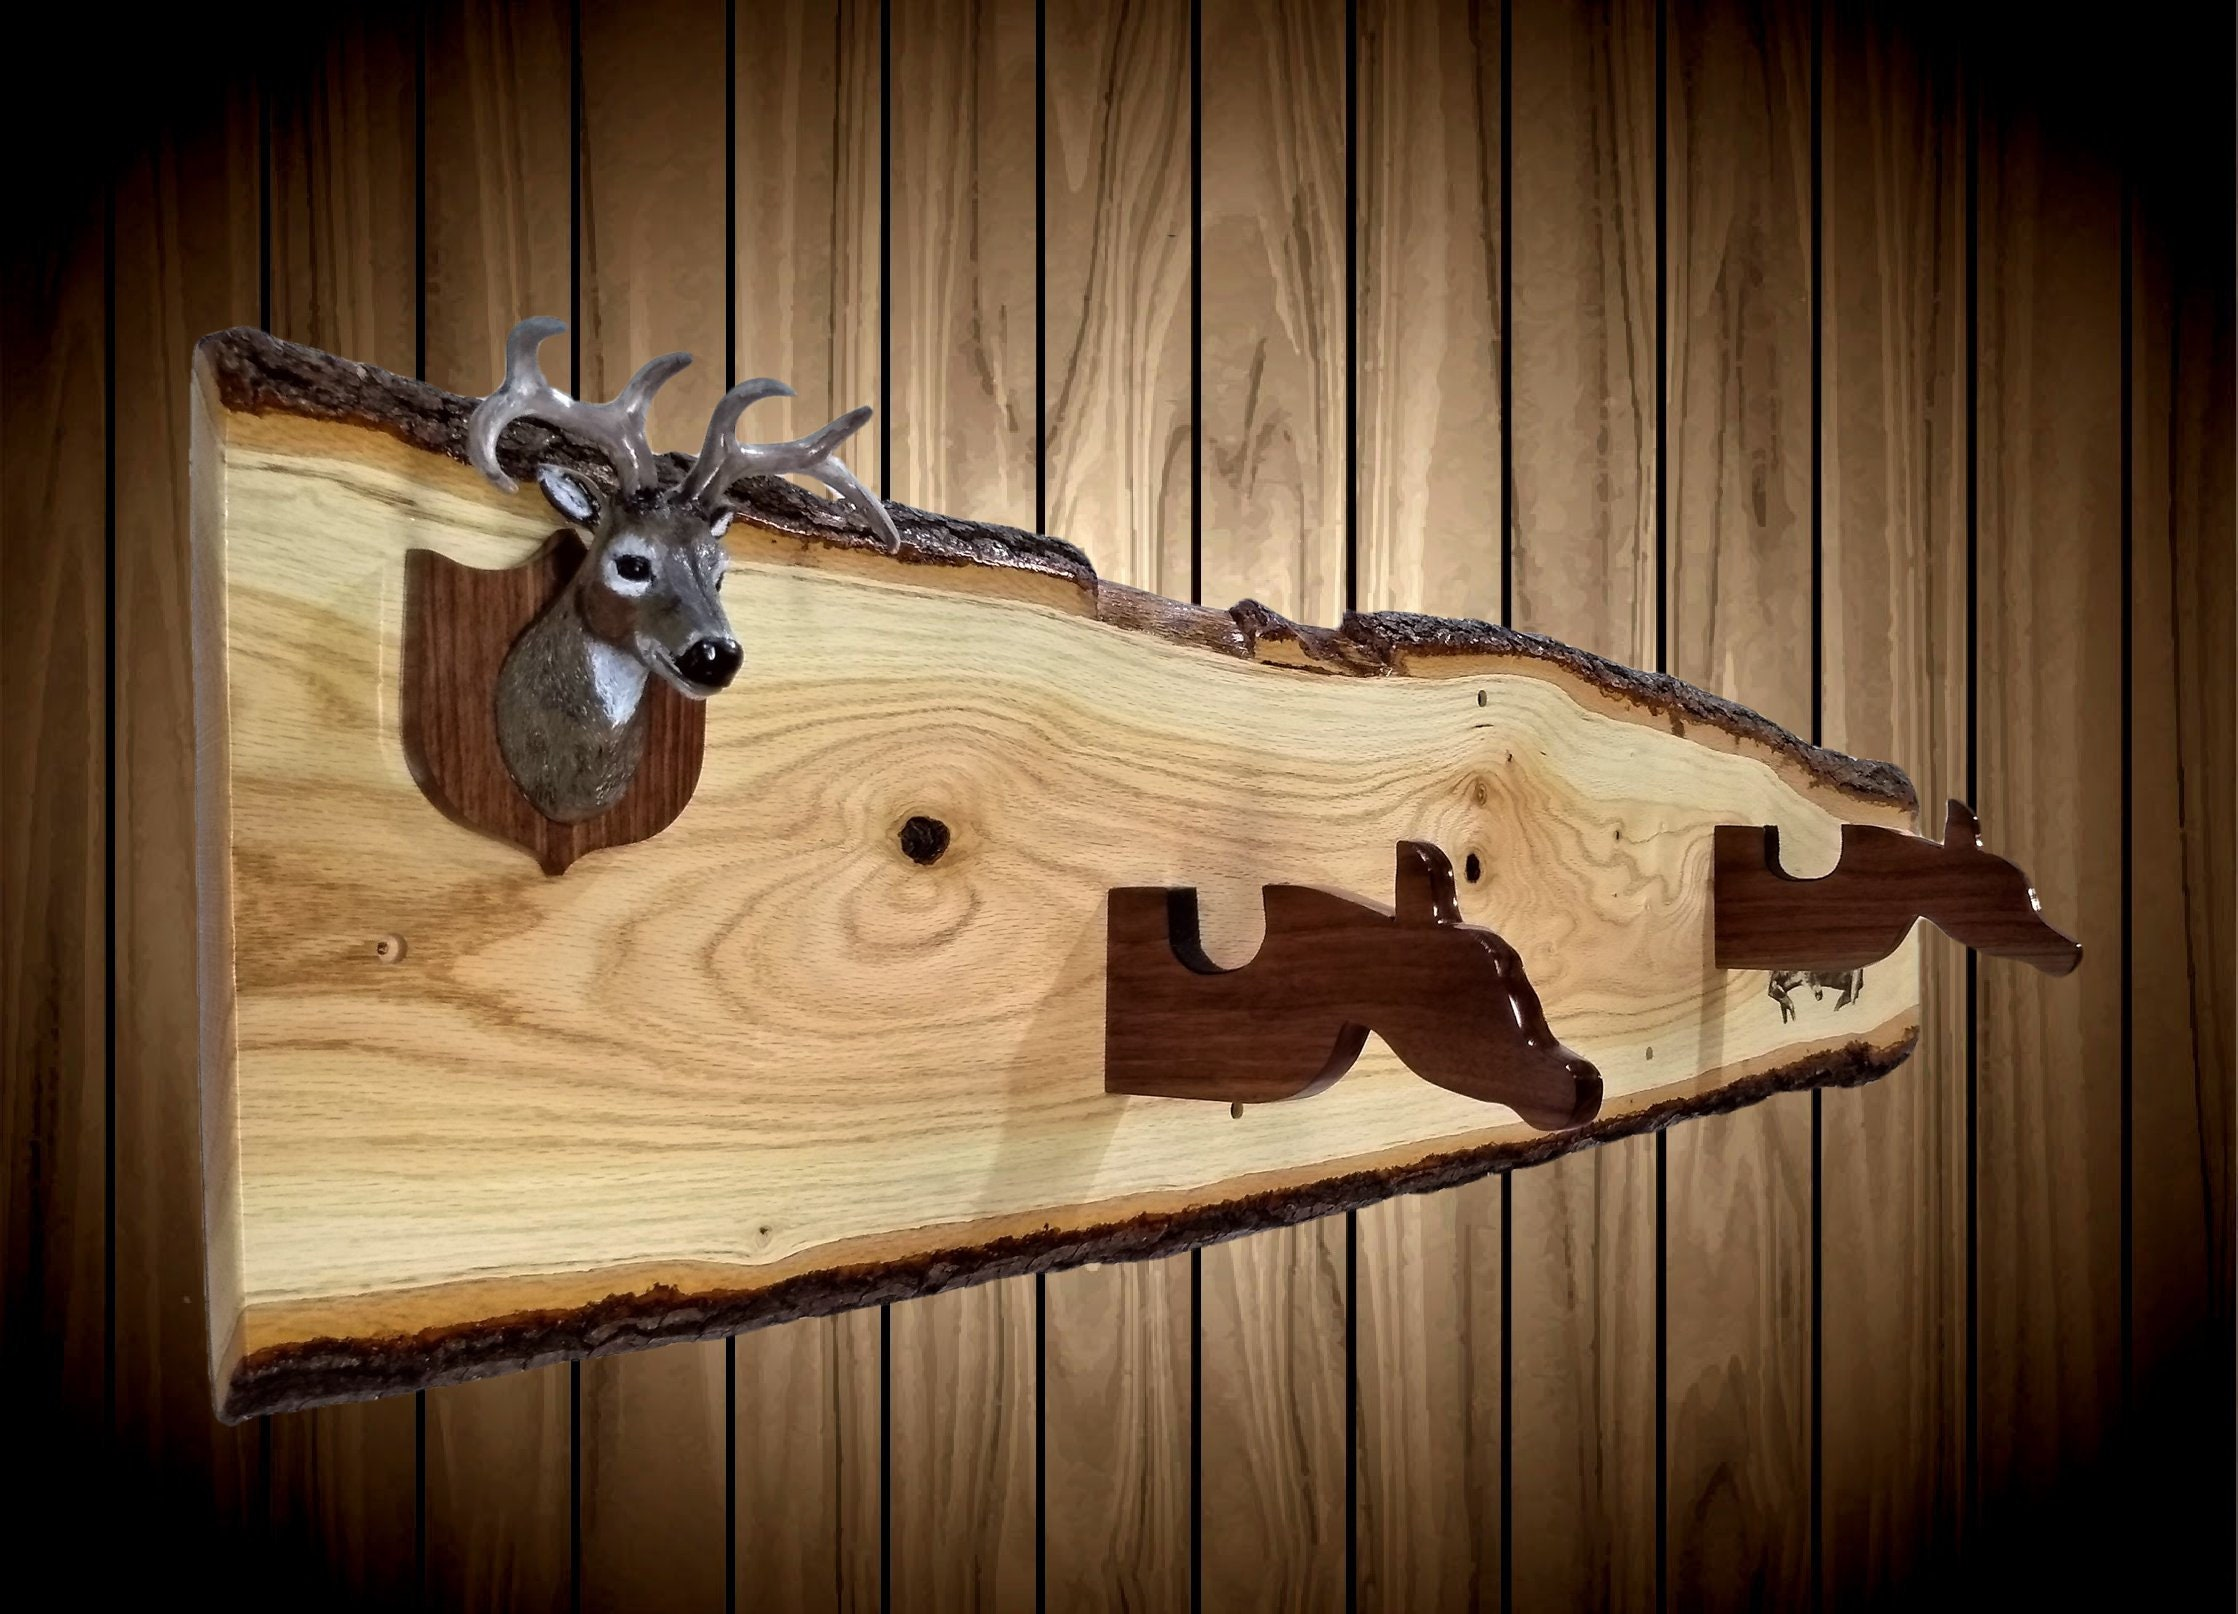 Live Edge Oak Gun Rack Mini Buck Mount Walnut Hangers